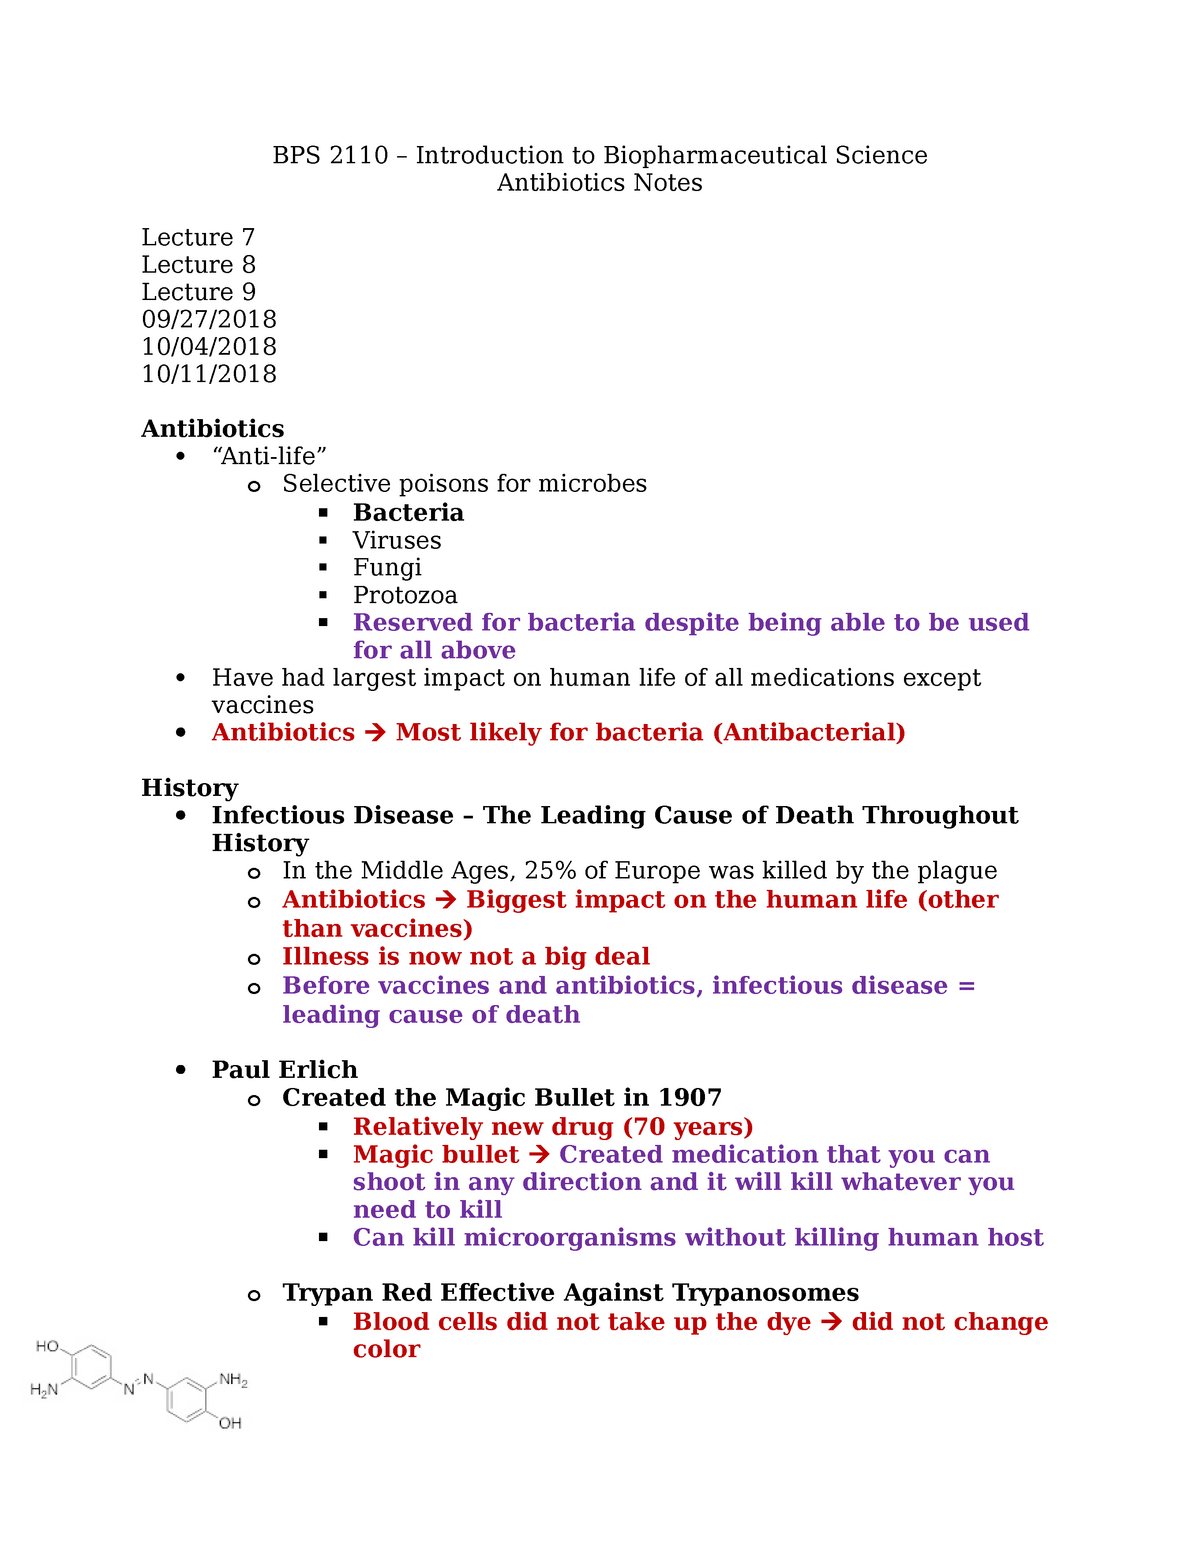 Topic 4 - Antibiotics Notes - BPS2110: Introduction to